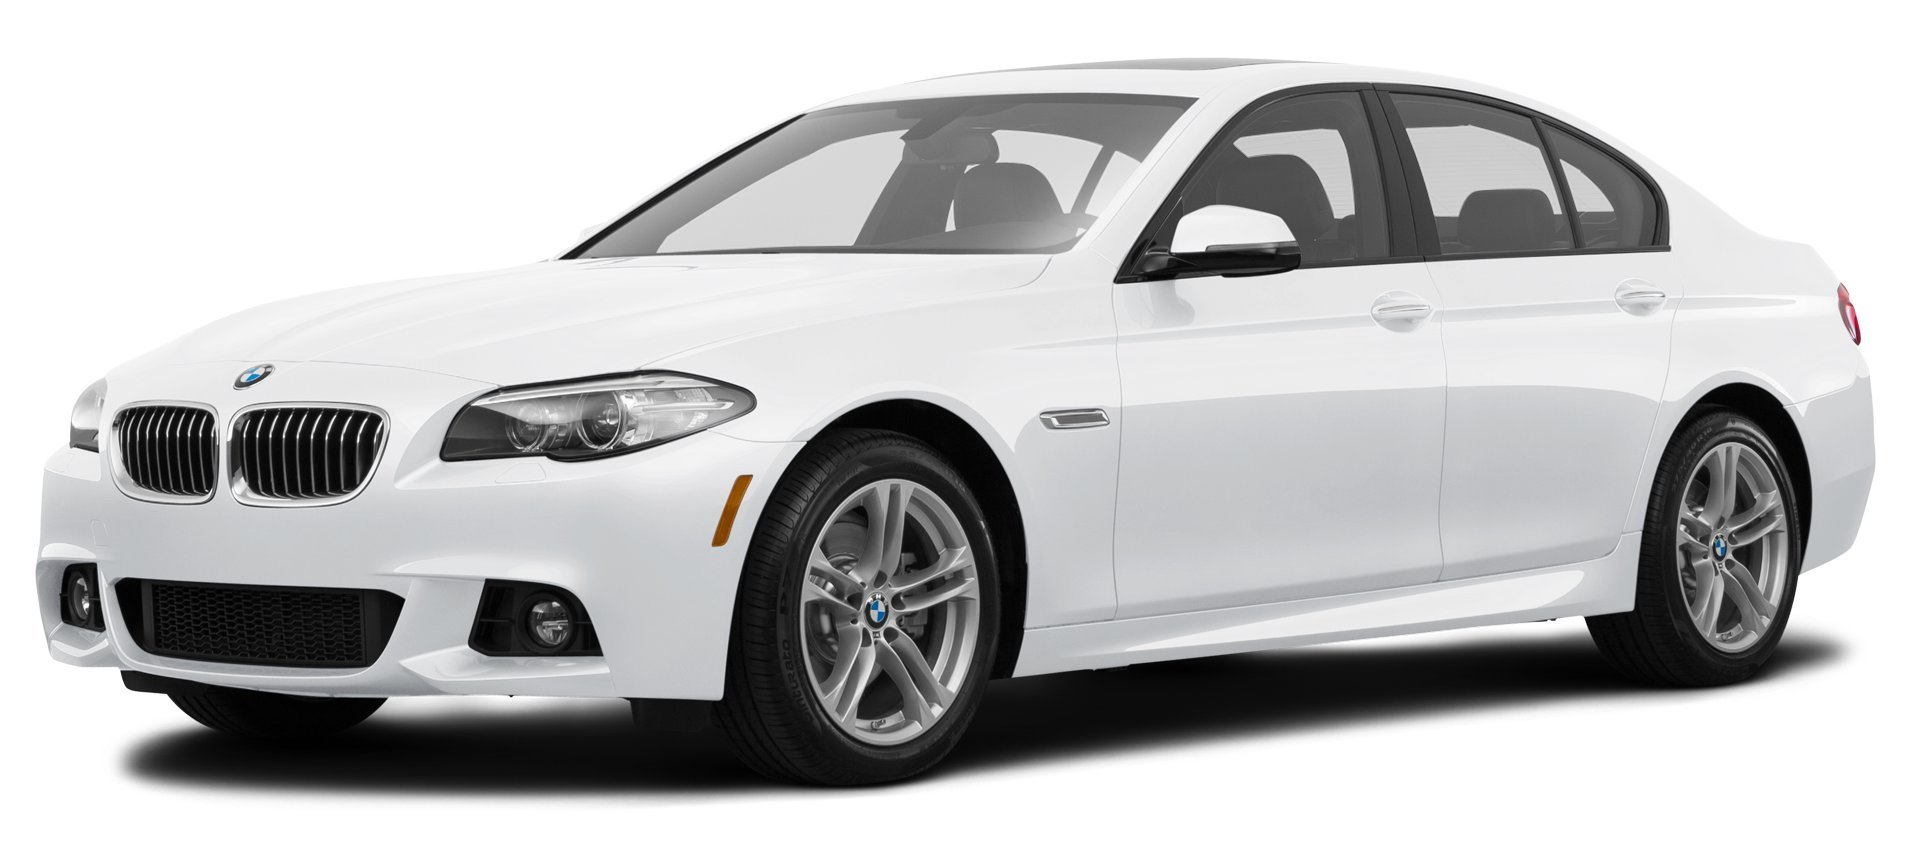 Amazoncom BMW I Reviews Images And Specs Vehicles - 4 wheel drive bmw